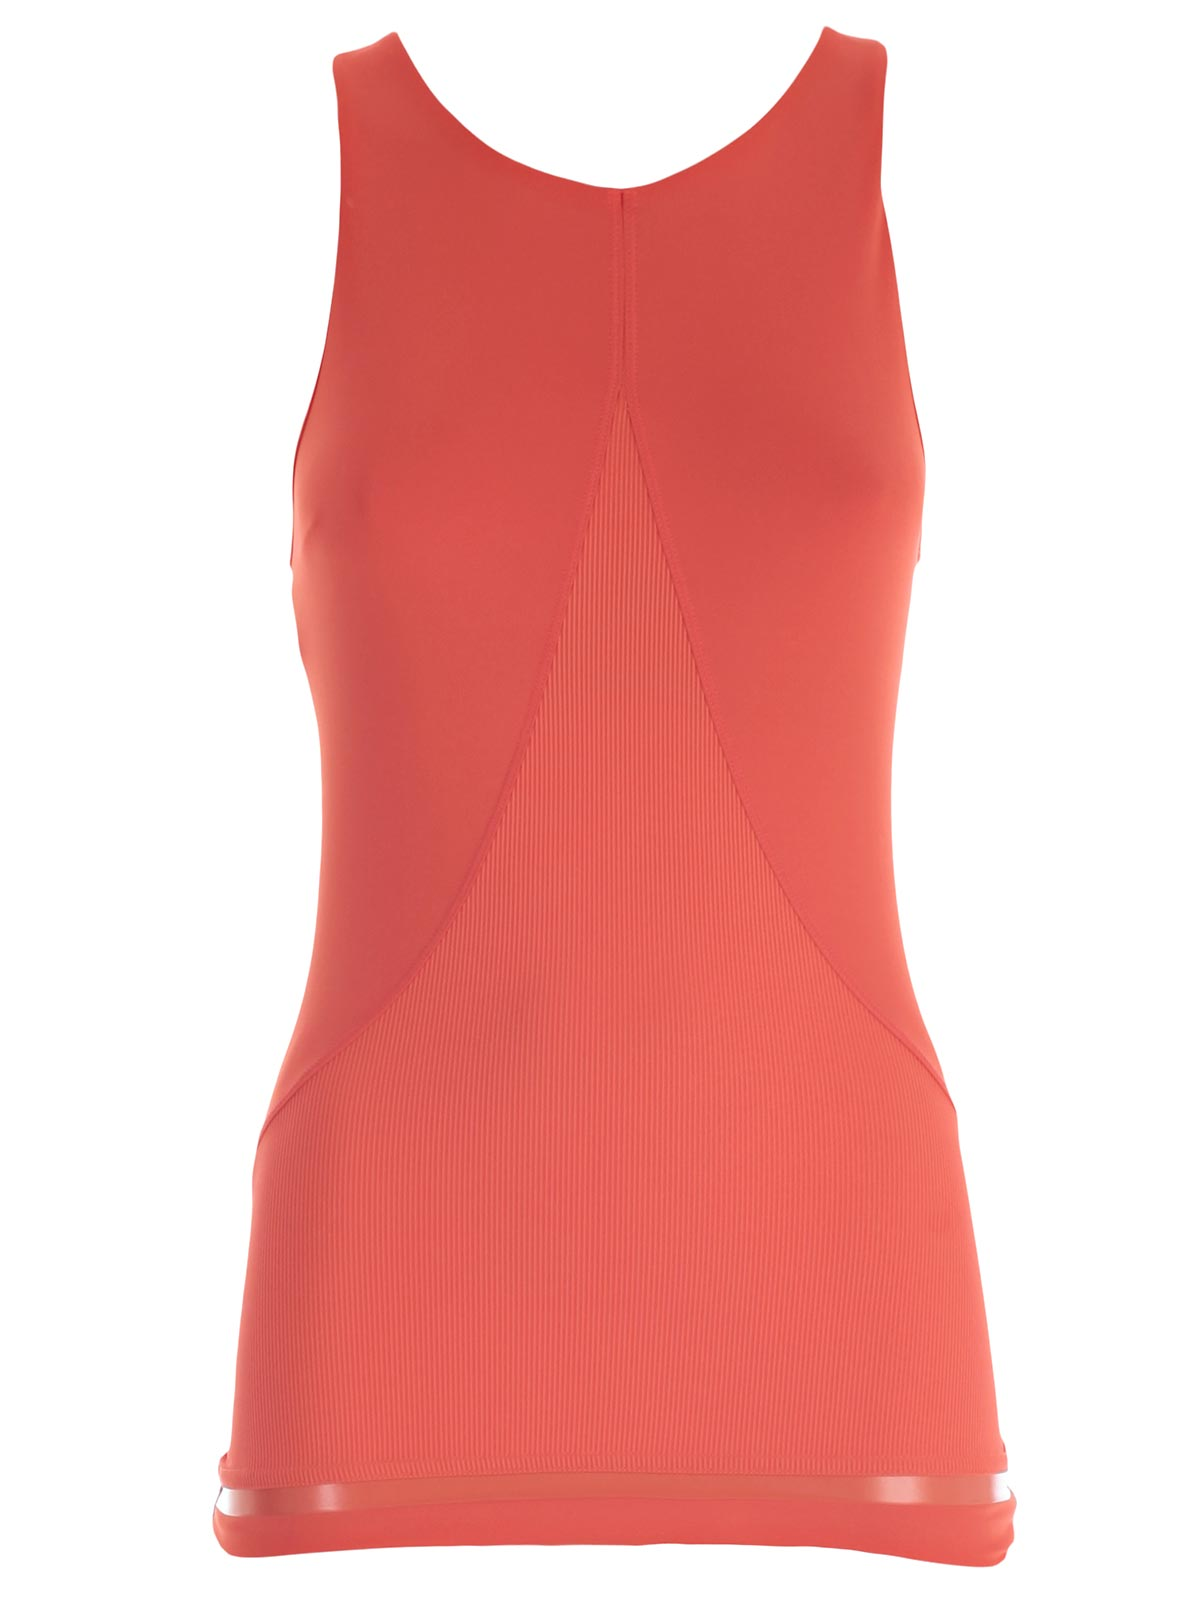 ADIDAS BY STELLA MCCARTNEY Training Tank Top, Balze Orance S13